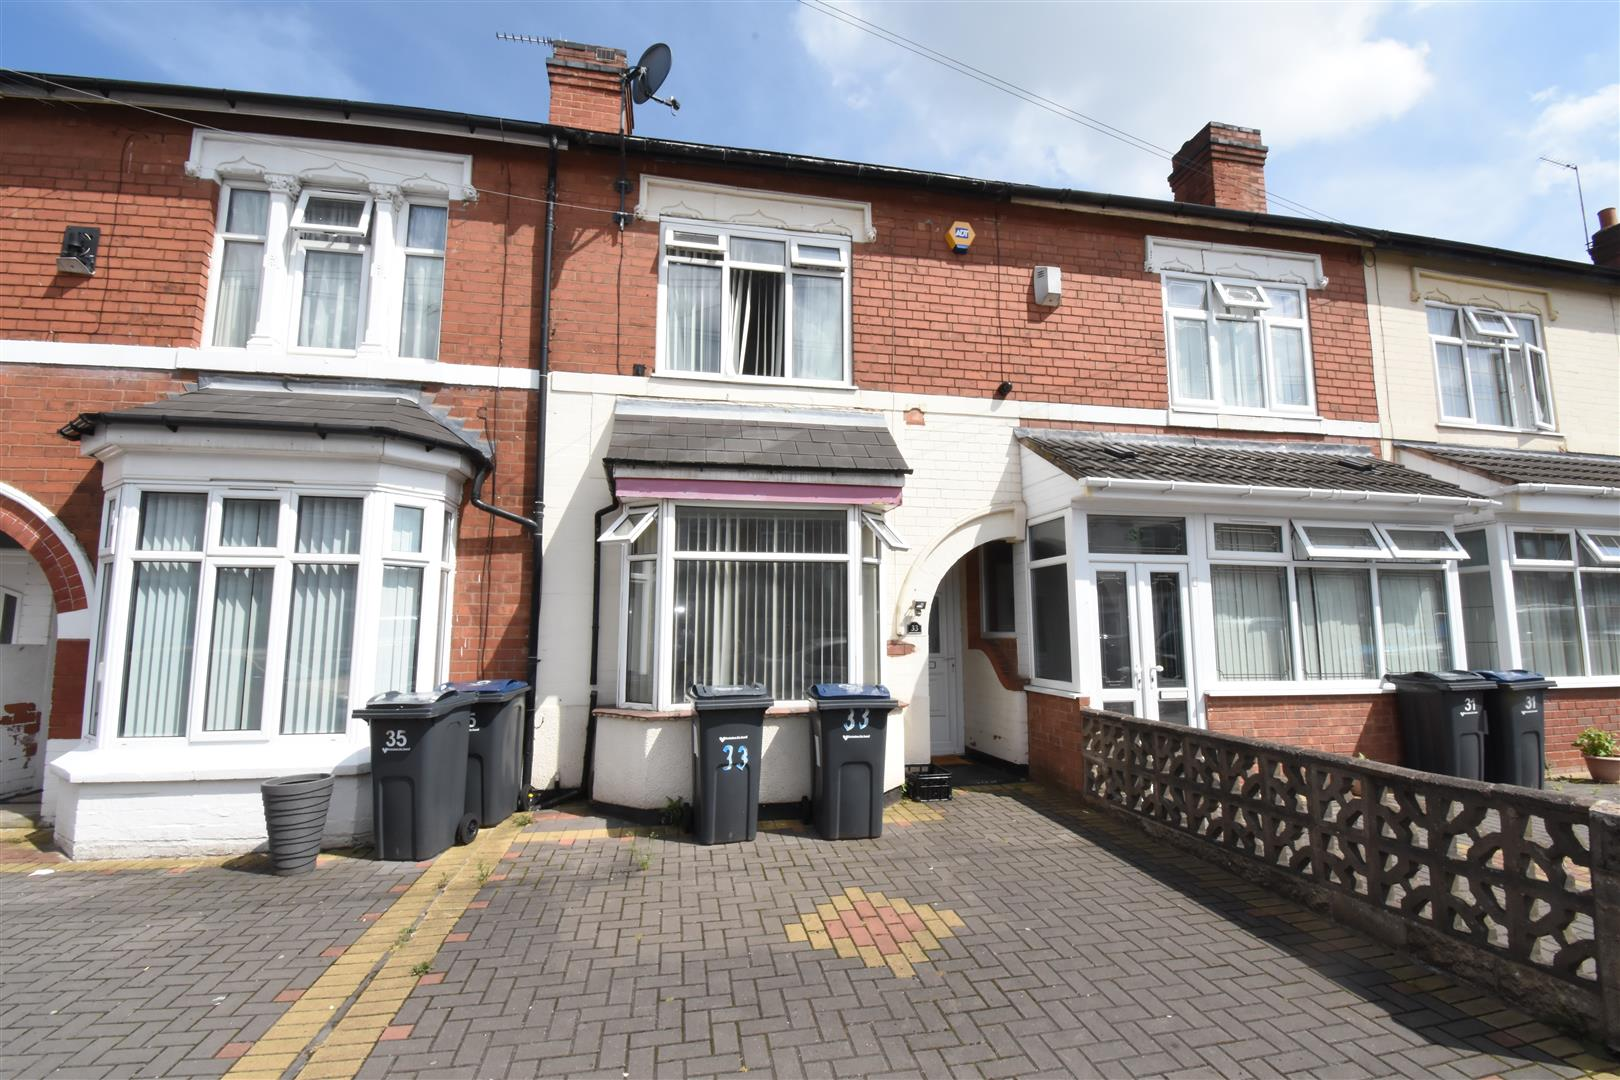 3 bed house for sale in Southern Road, Birmingham - Property Image 1